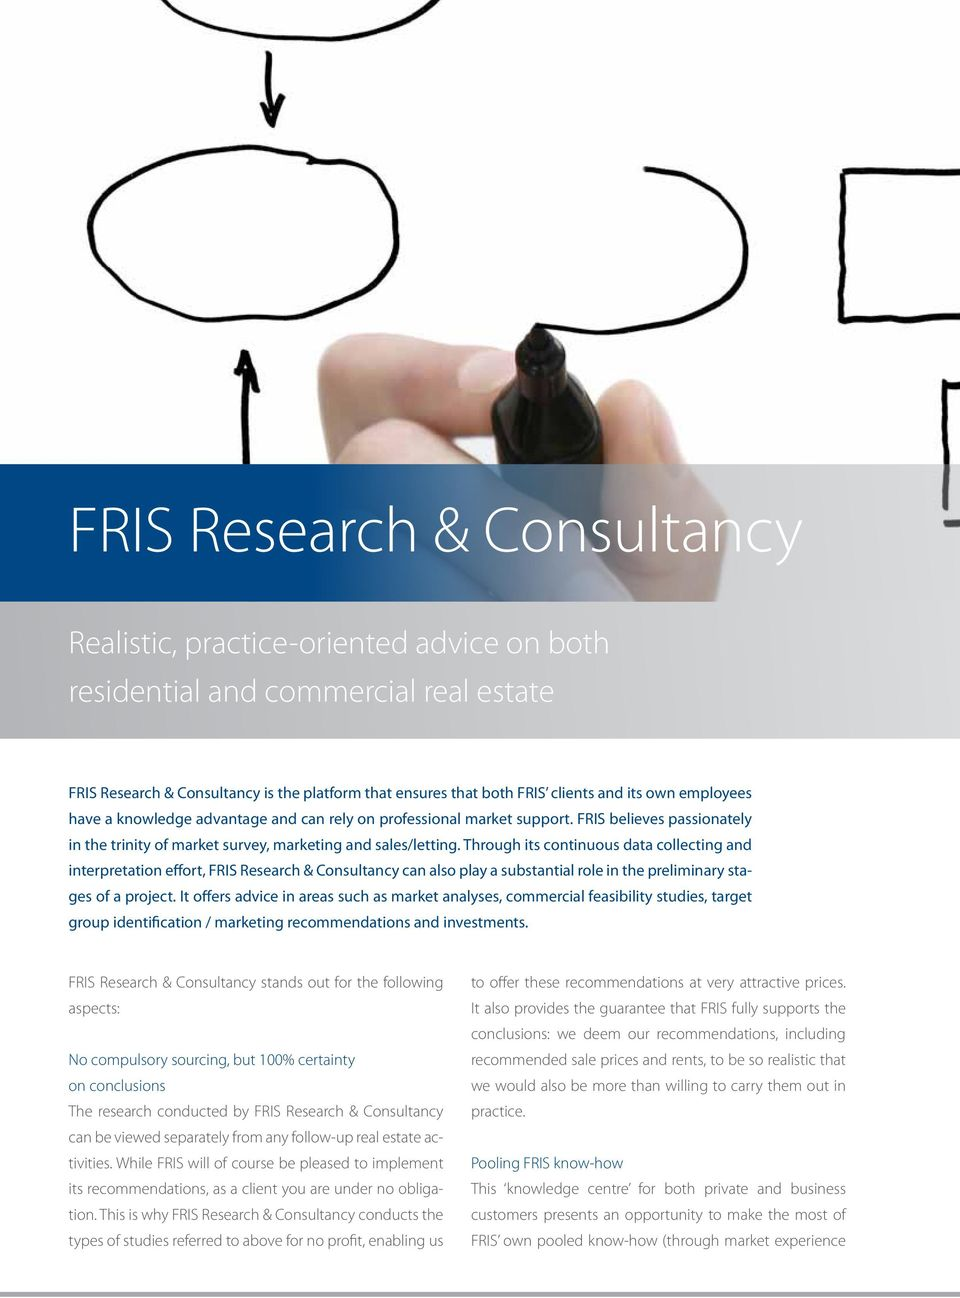 Through its continuous data collecting and interpretation effort, FRIS Research & Consultancy can also play a substantial role in the preliminary stages of a project.